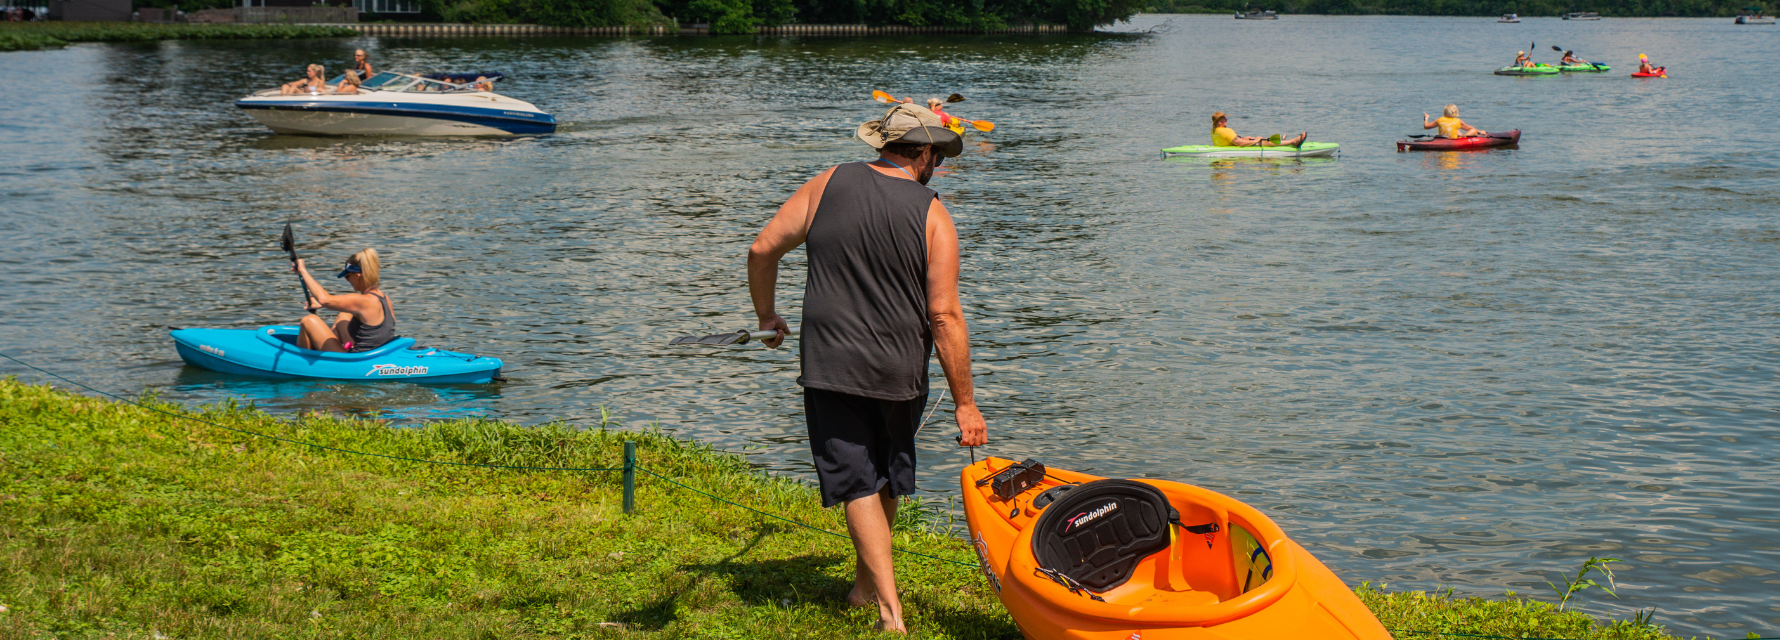 man on the grass with kayak heading to the lake